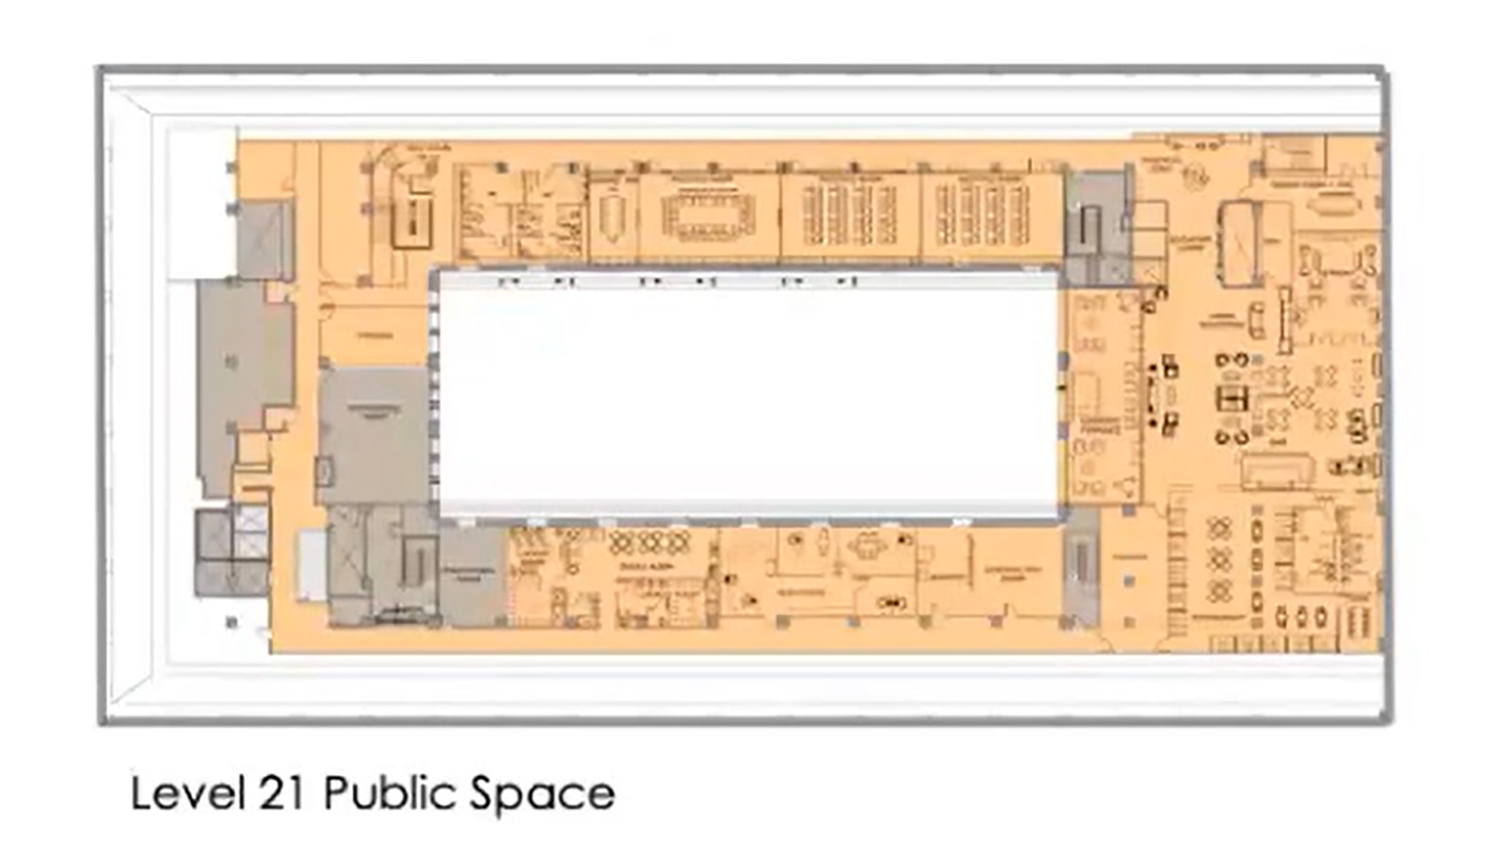 21st Floor Plan for 208 S LaSalle Street. Drawing by The Prime Group